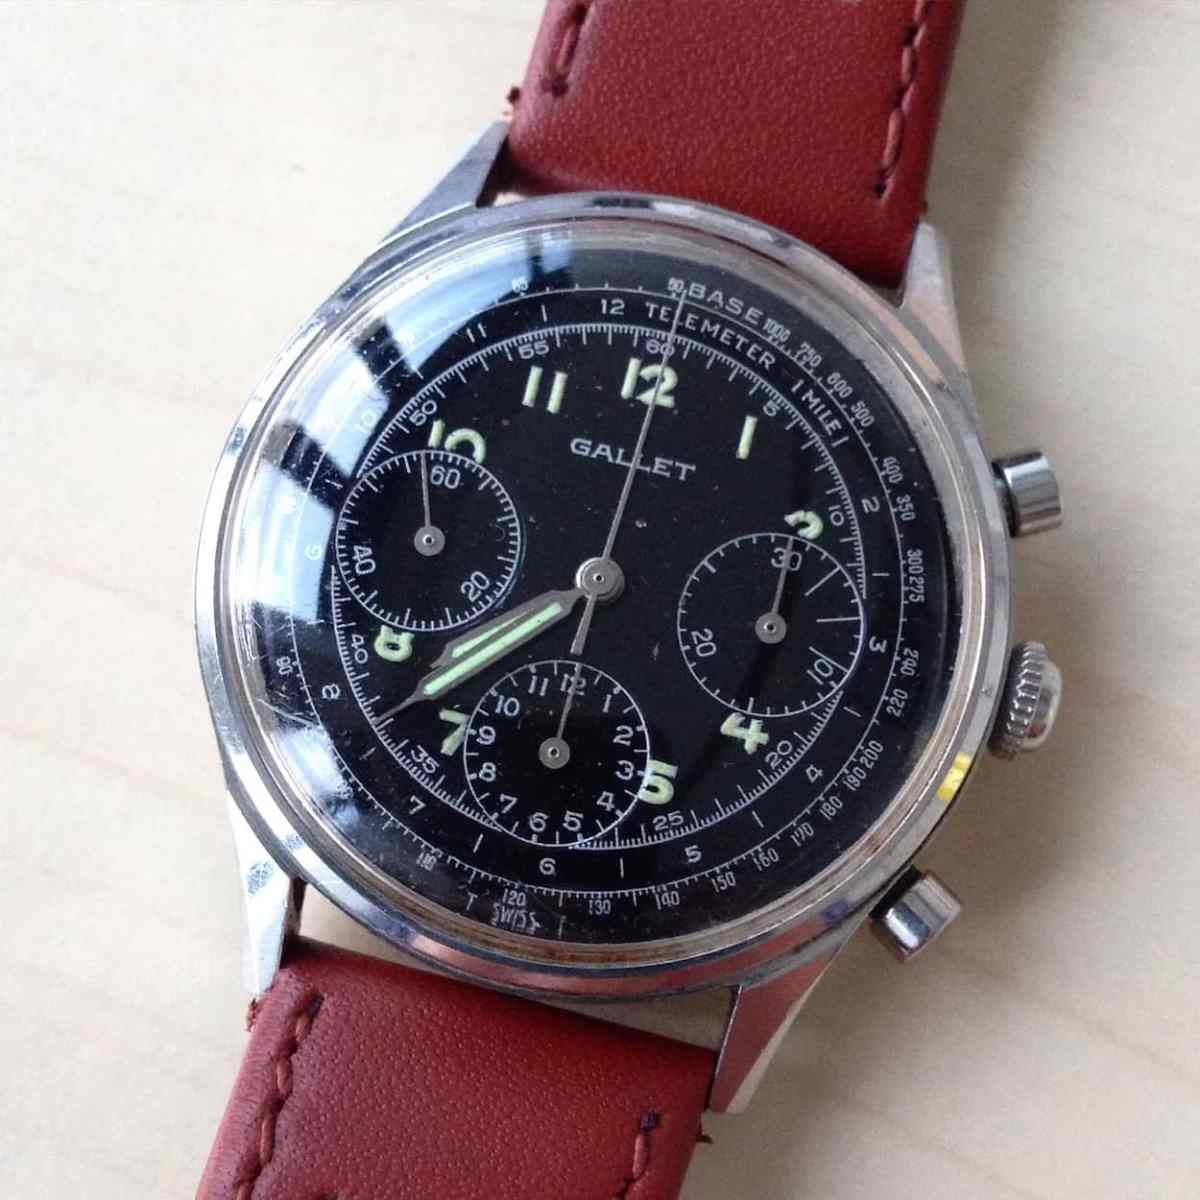 Gallet Chronograph